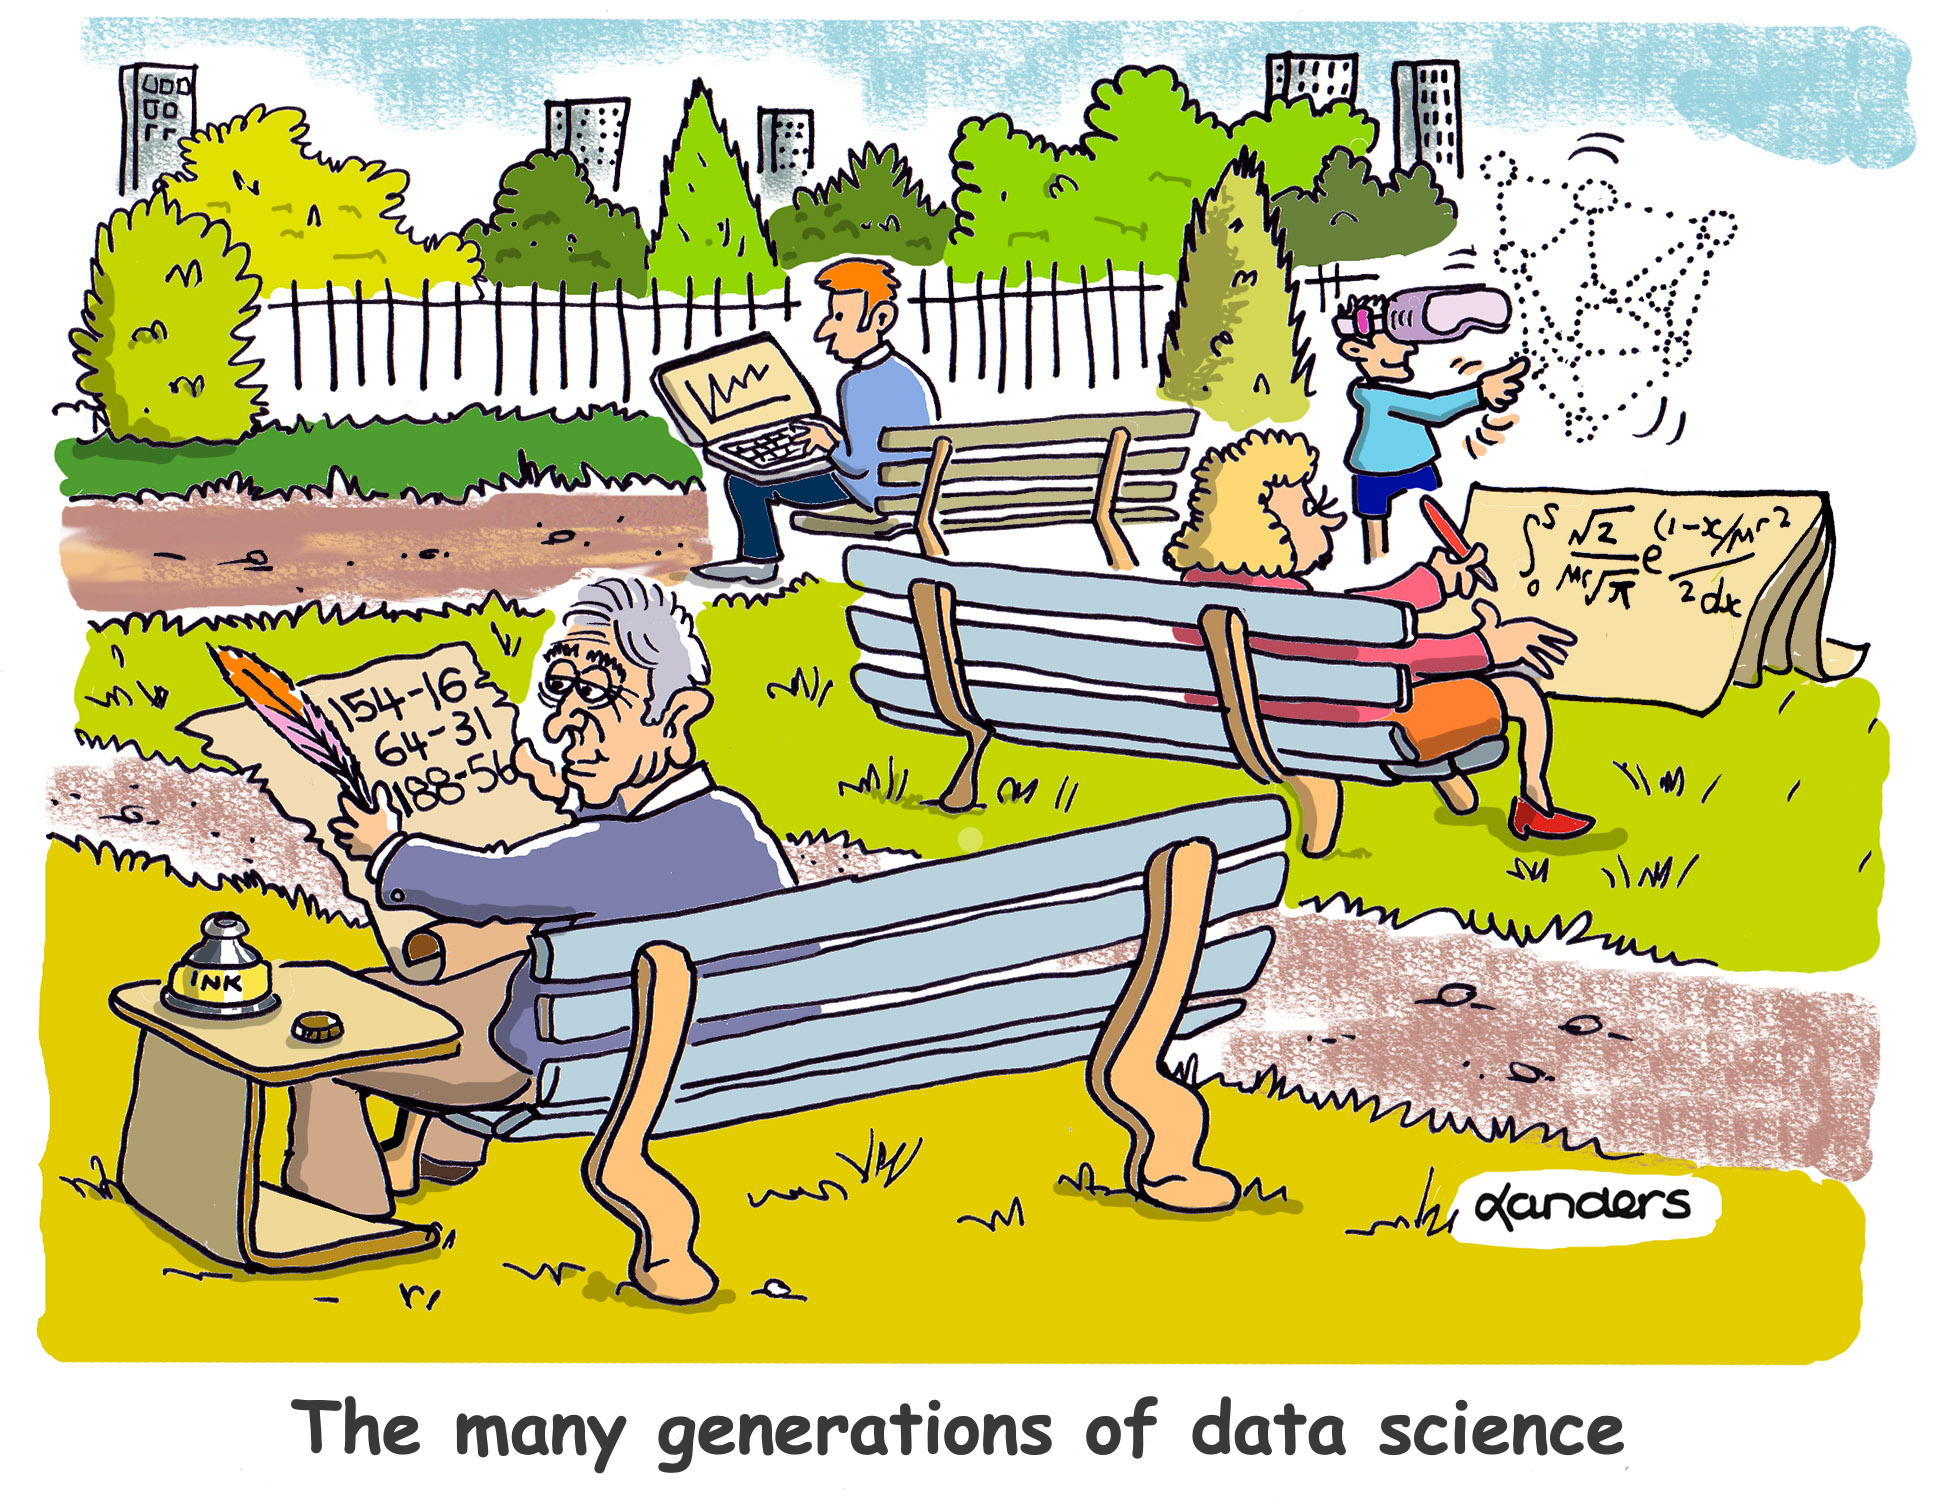 cartoon showing changes in data approaches across generations